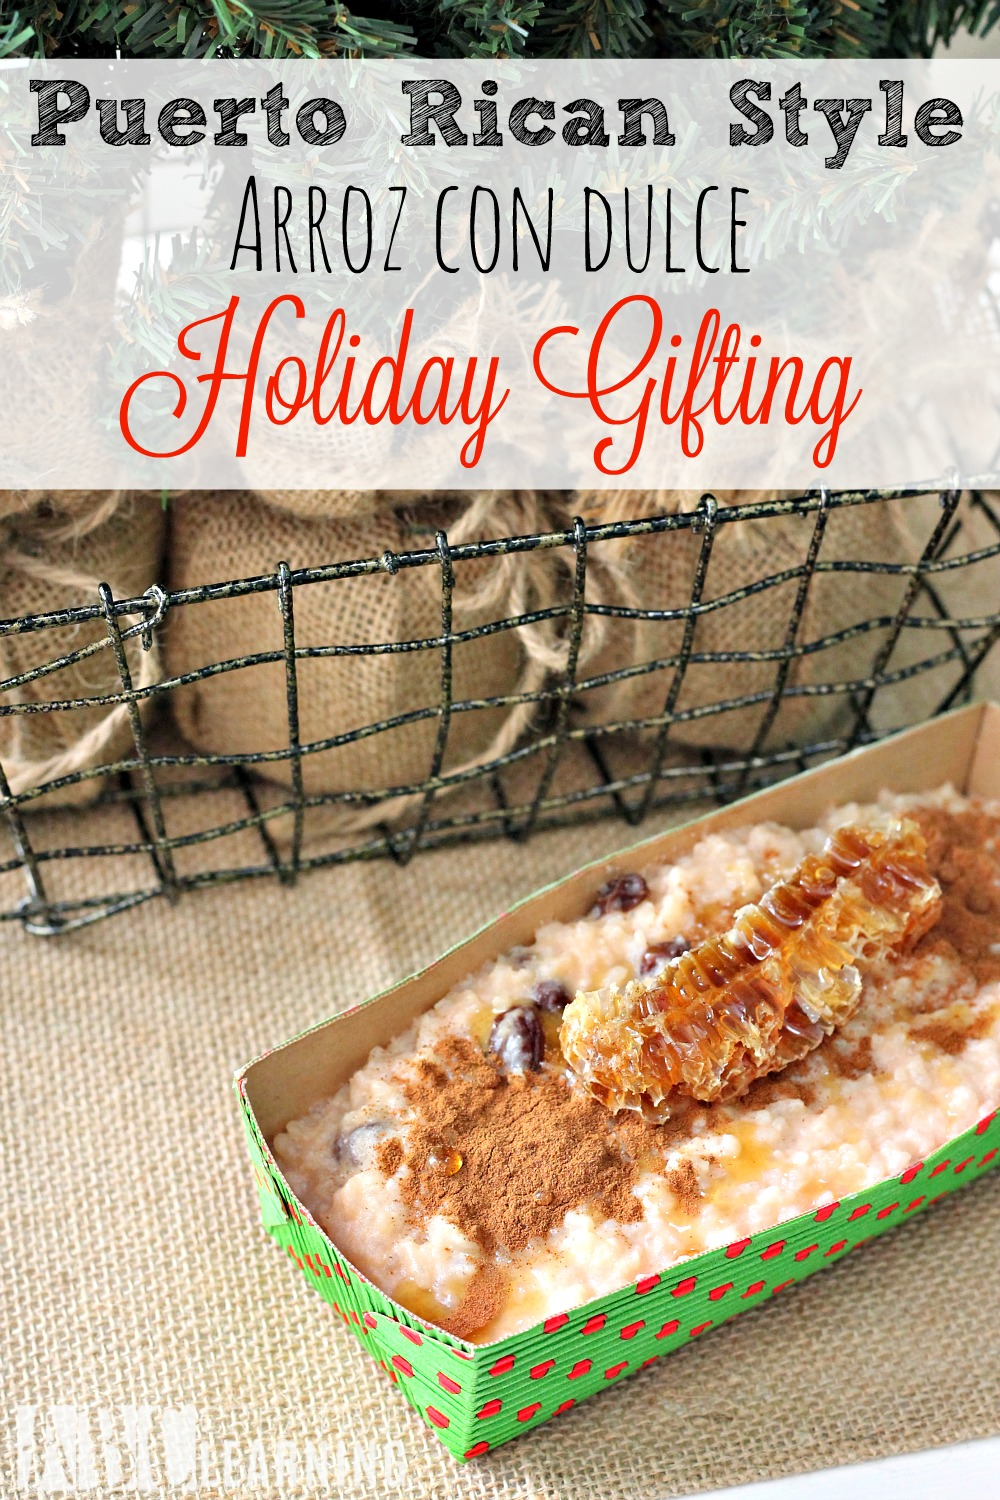 Puerto Rican Style Arroz Con Dulce Holiday Gifting